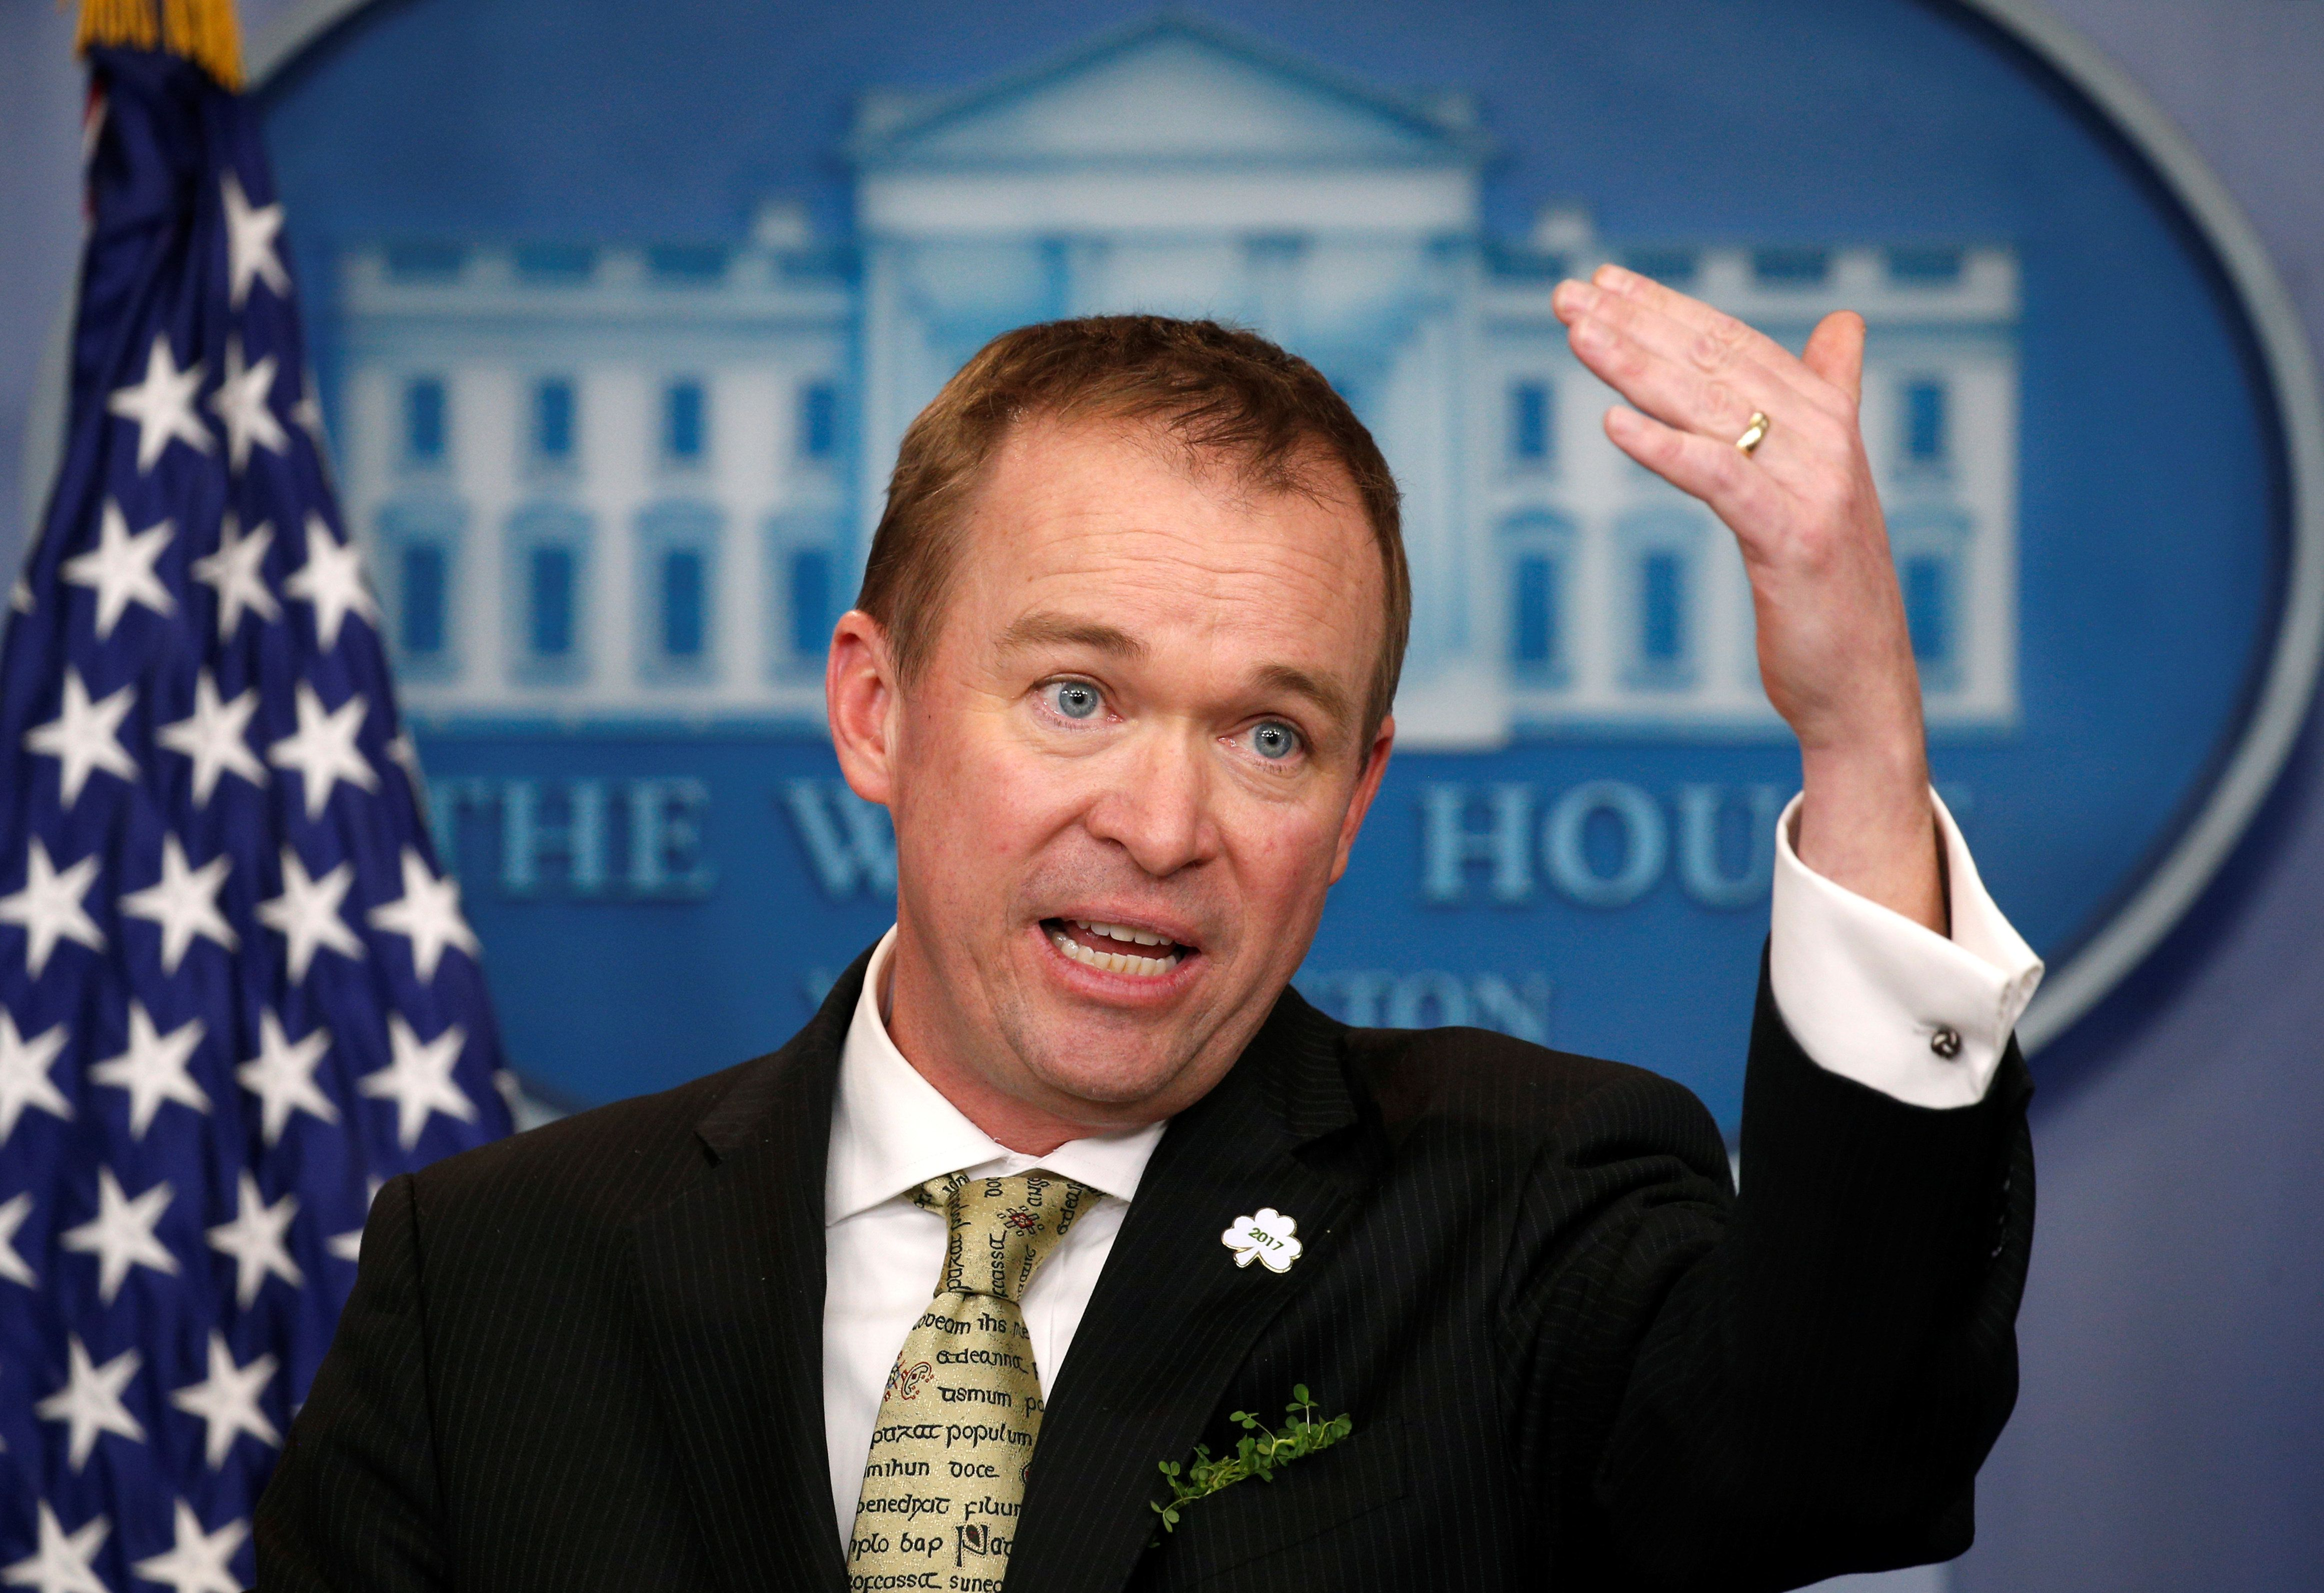 White House Office of Management and Budget Director Mick Mulvaney speaks about of U.S. President Donald Trump's budget in the briefing room of the White House in Washington, U.S., March 16, 2017. REUTERS/Kevin Lamarque